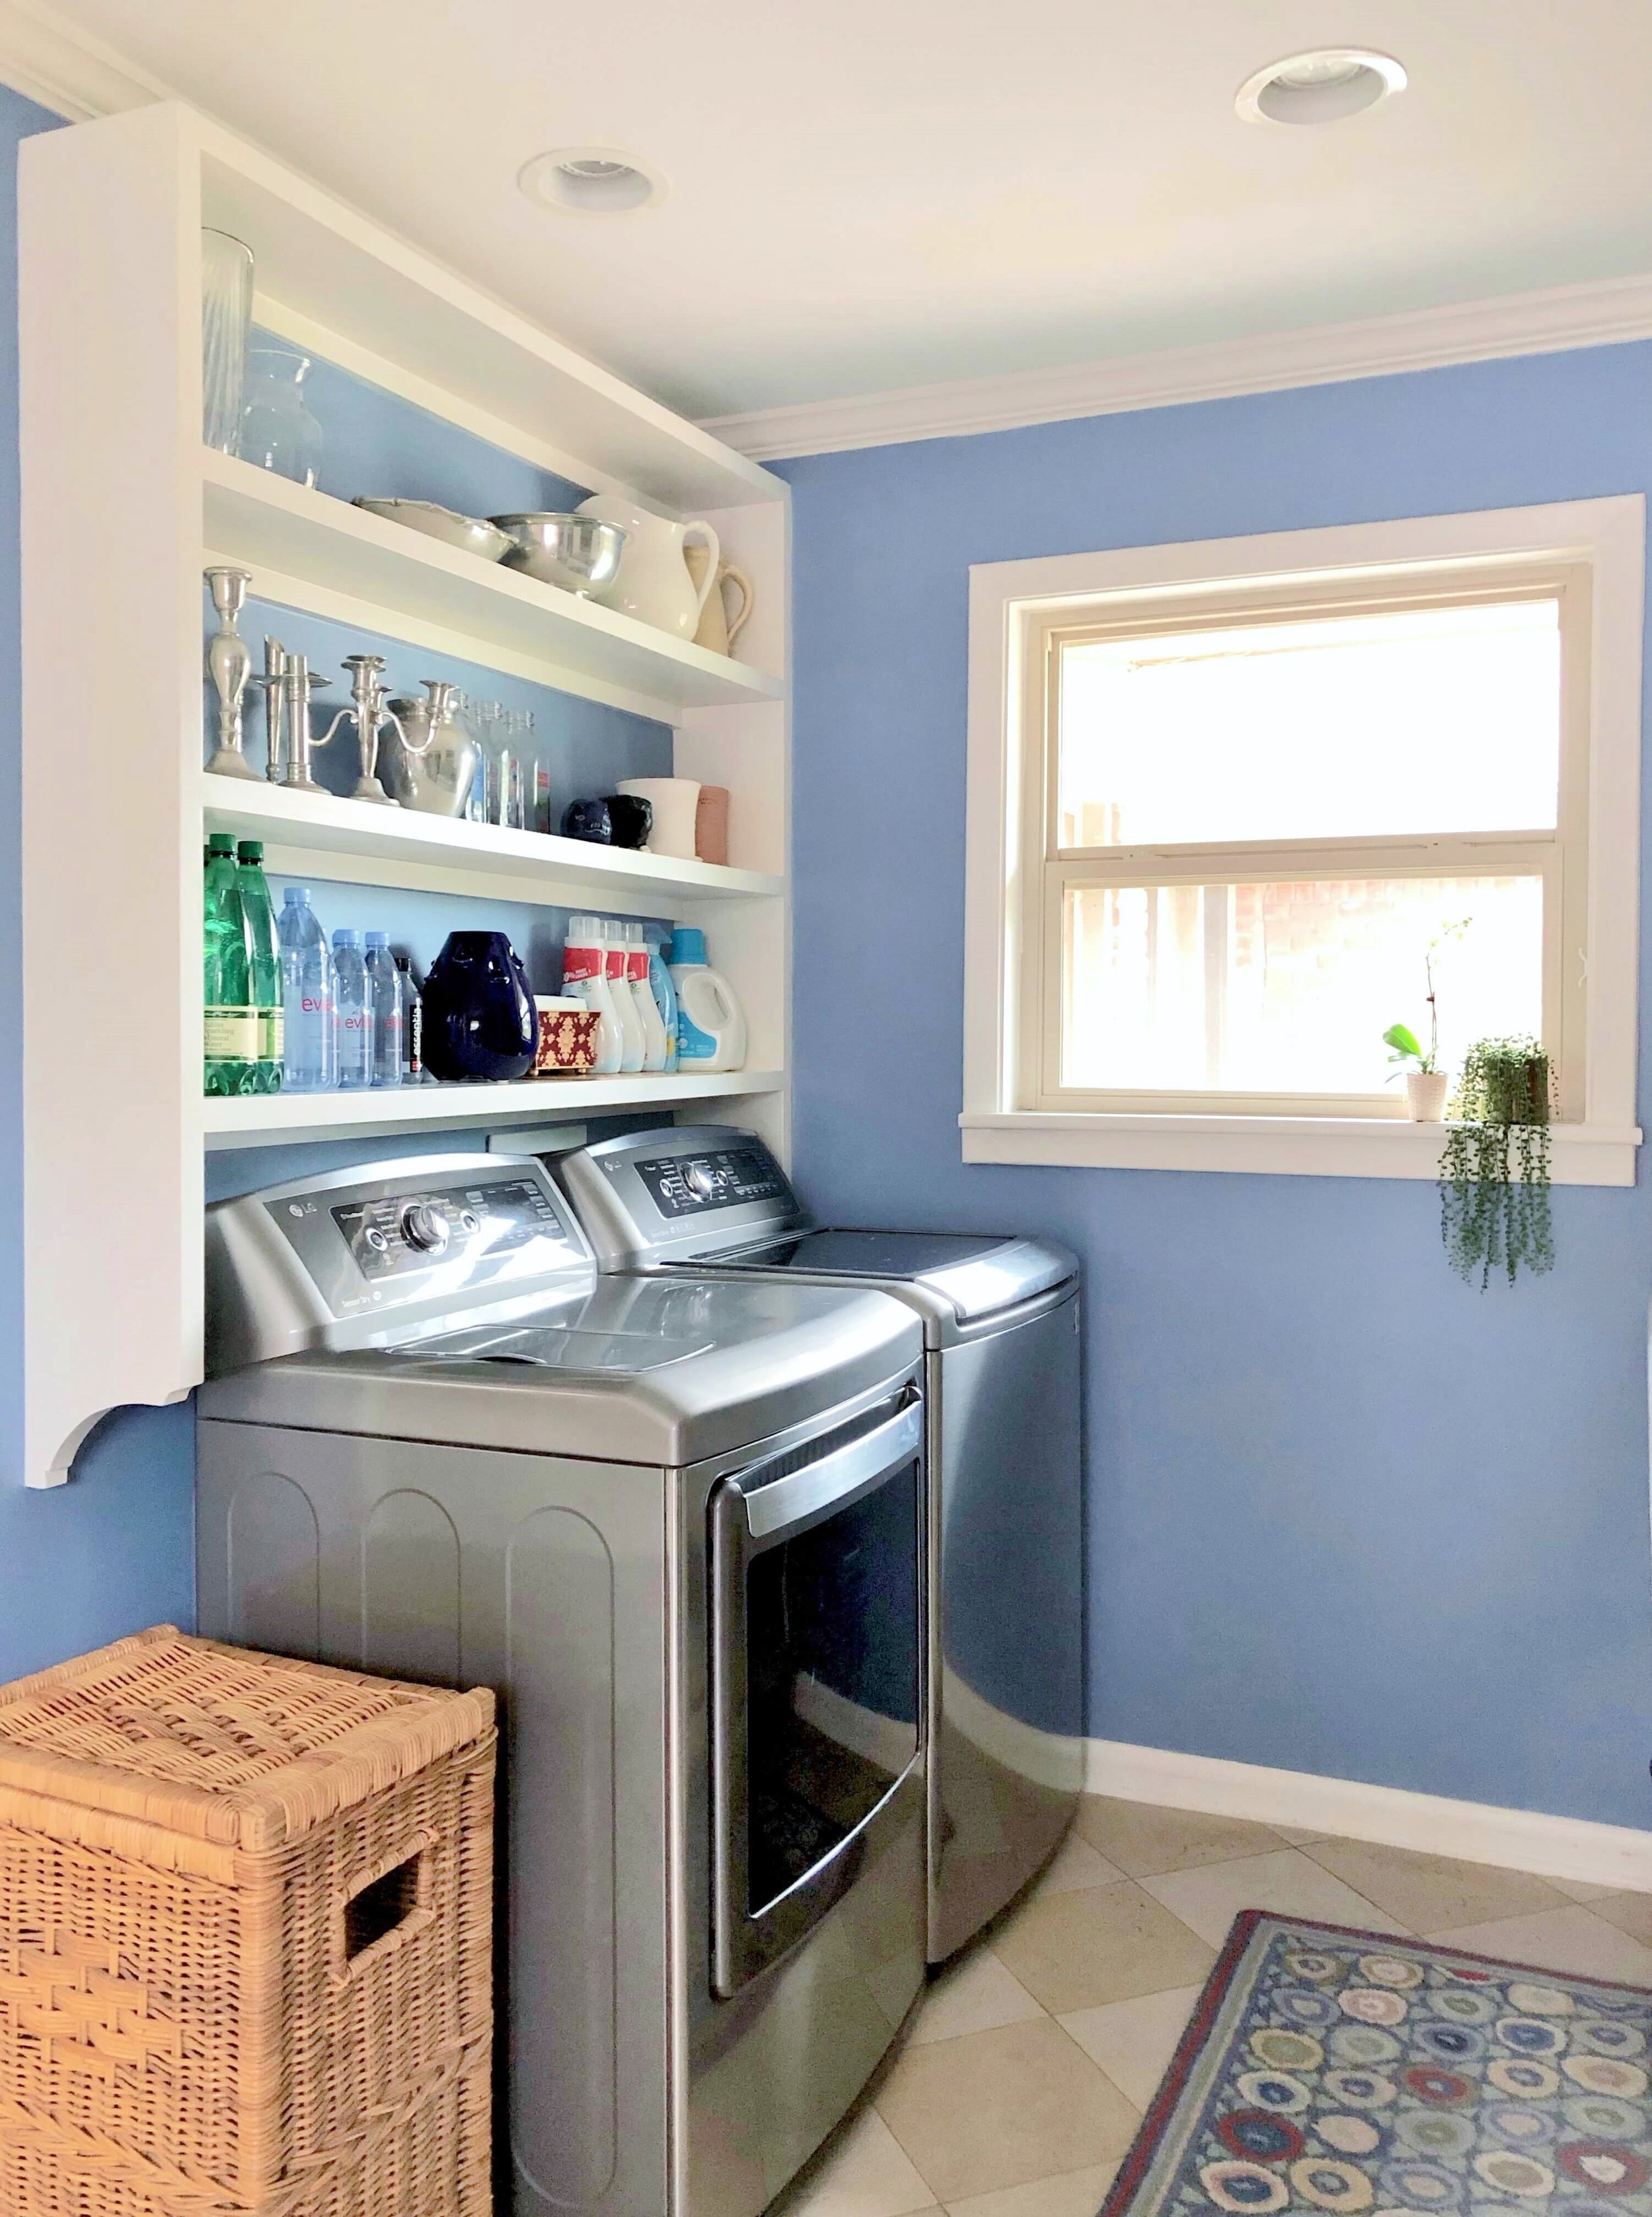 Pretty laundry room in periwinkle blue, bracketed open shelving above | Carla Aston, Designer